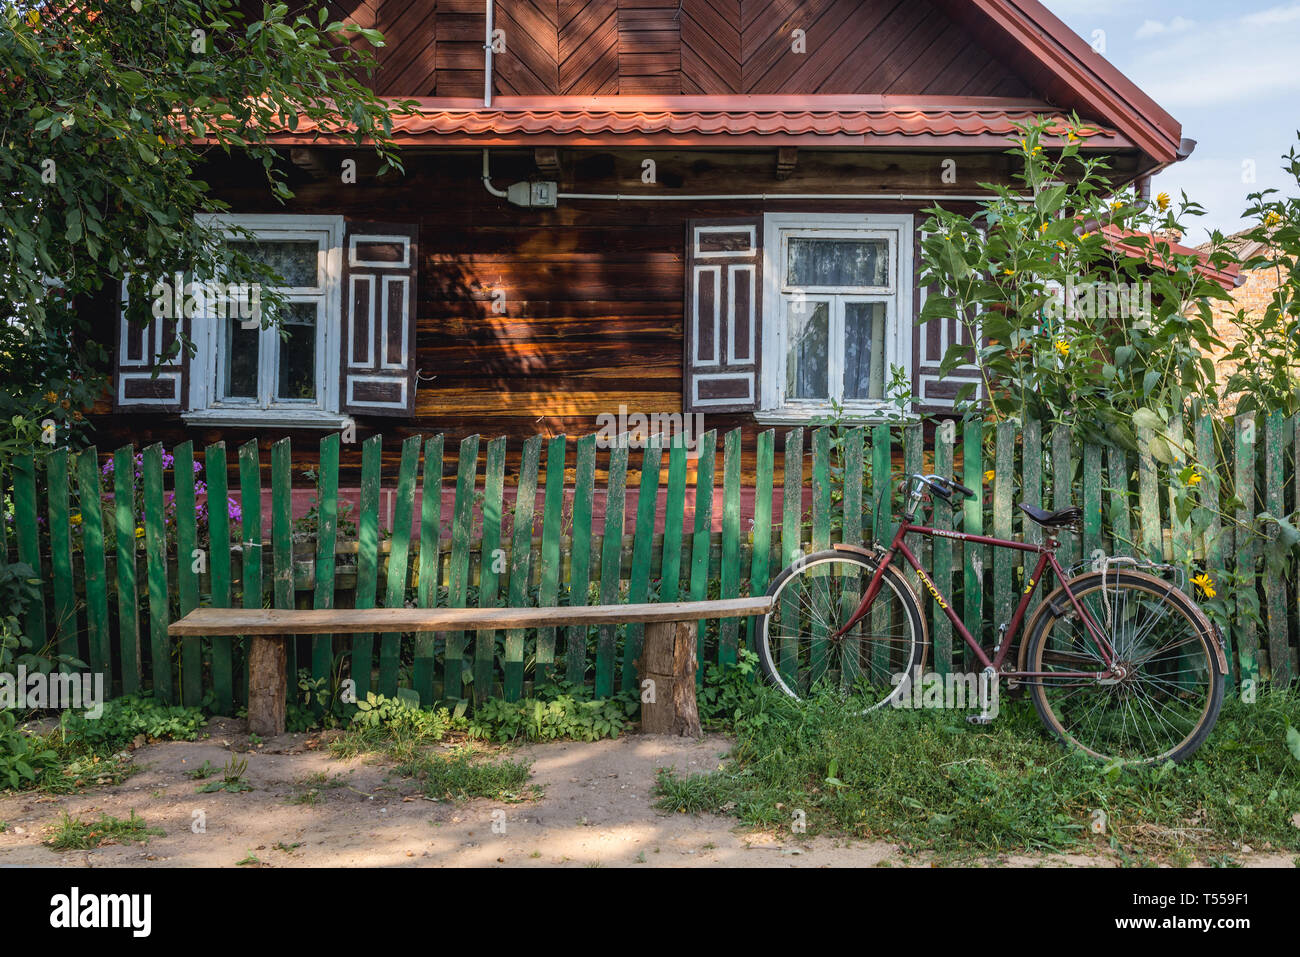 House in Soce village on so called The Land of Open Shutters trail, famous for traditional architecture in Podlaskie Voivodeship, Poland - Stock Image